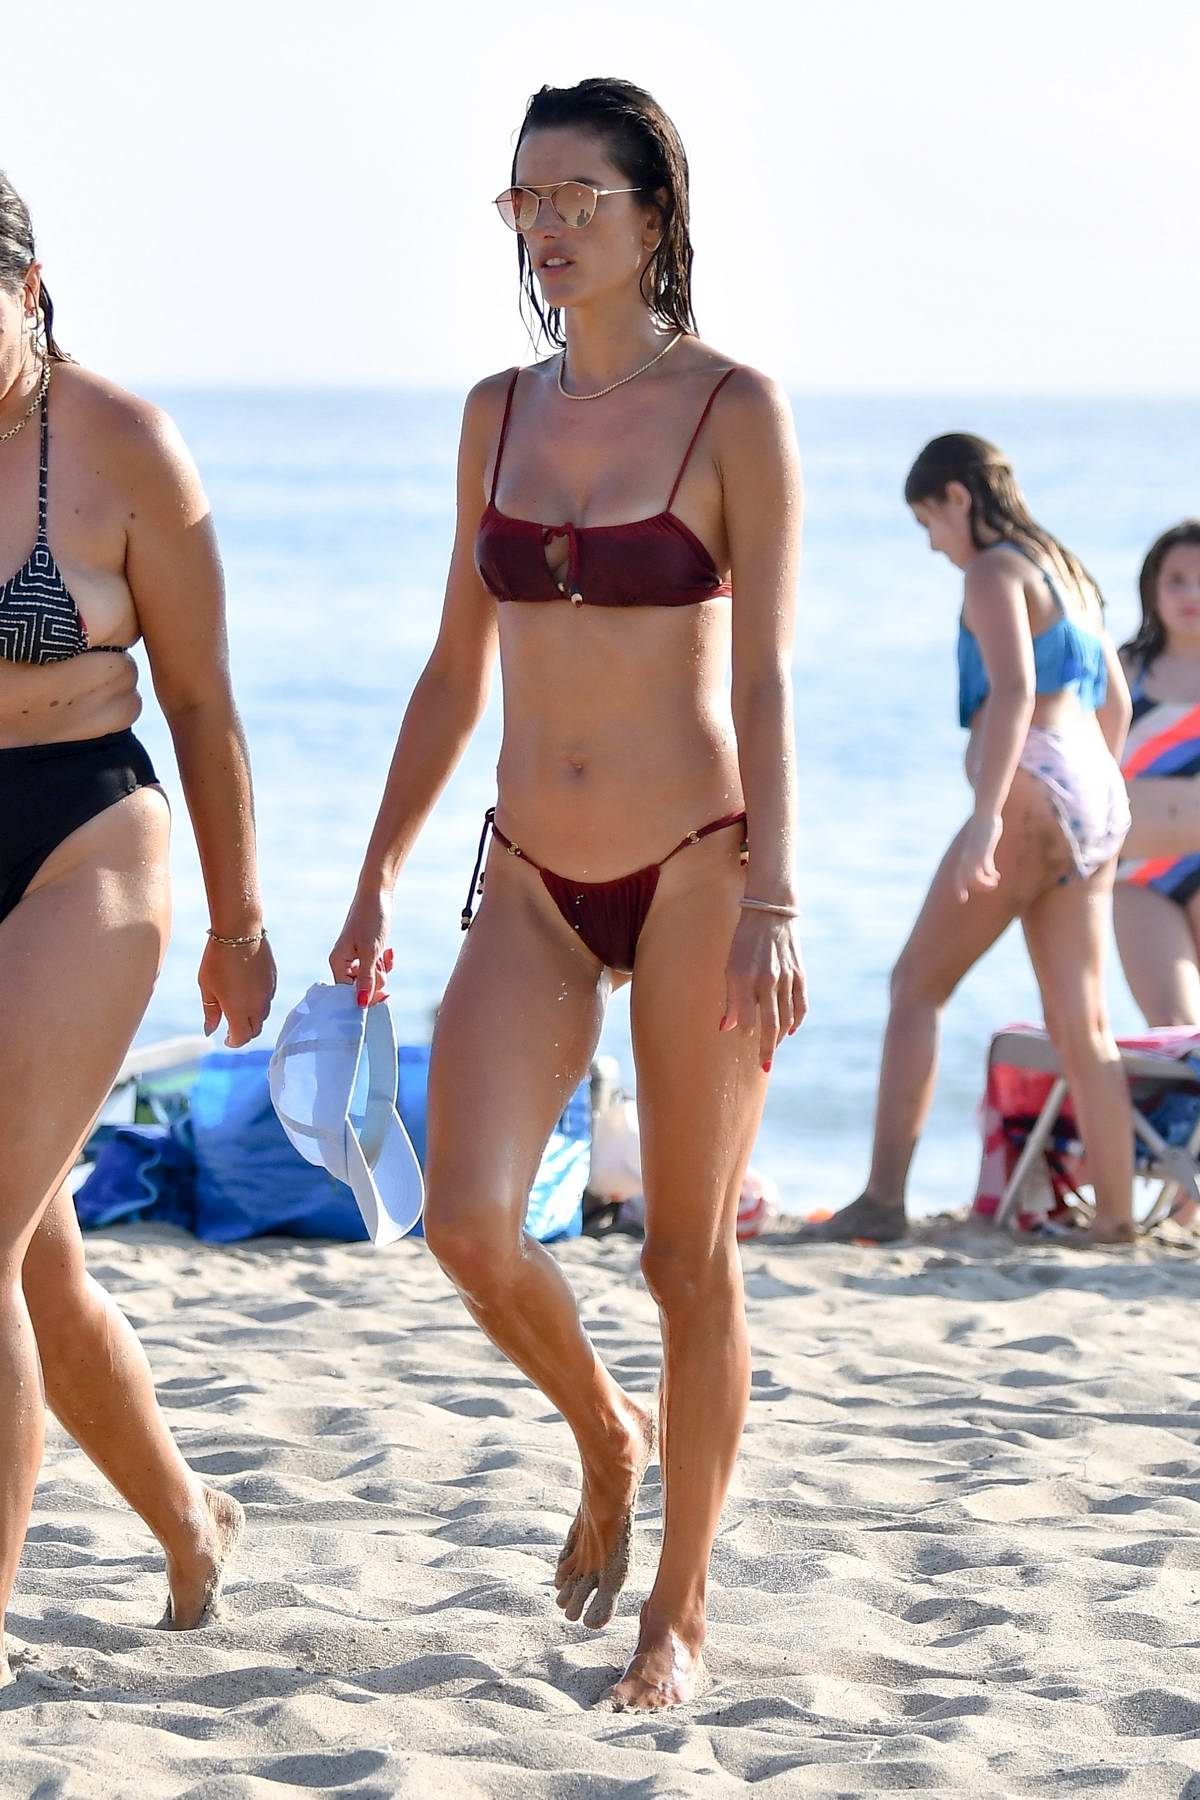 Alessandra Ambrosio stuns in a red bikini during a beach day with friends in Santa Monica, California